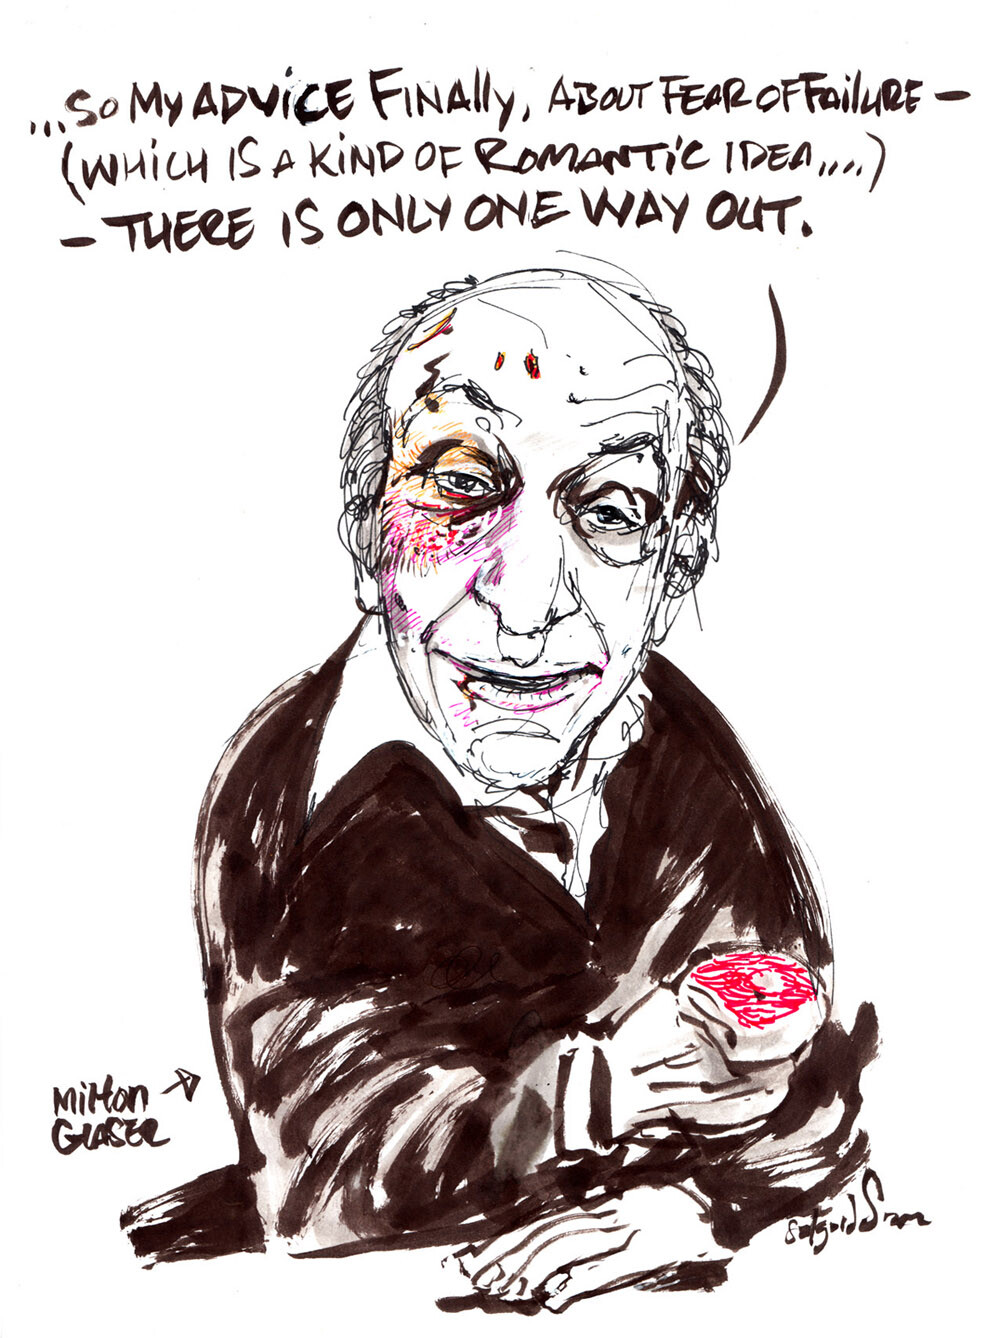 Milton Glaser in ink and pens.